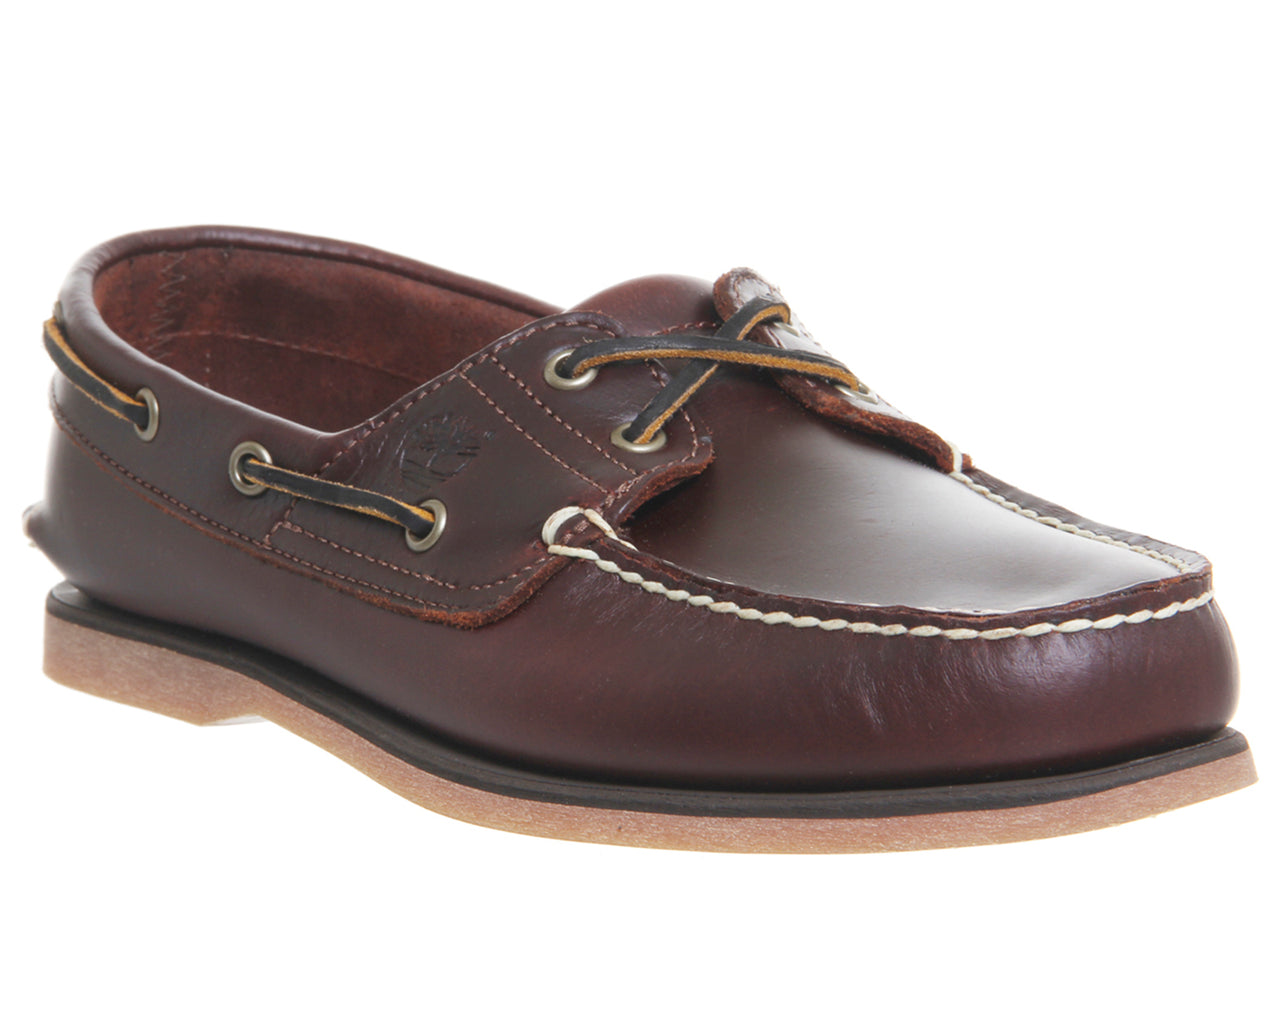 Mens Timberland New Boat Shoes Root Beer Leather - OFFCUTS SHOES by OFFICE